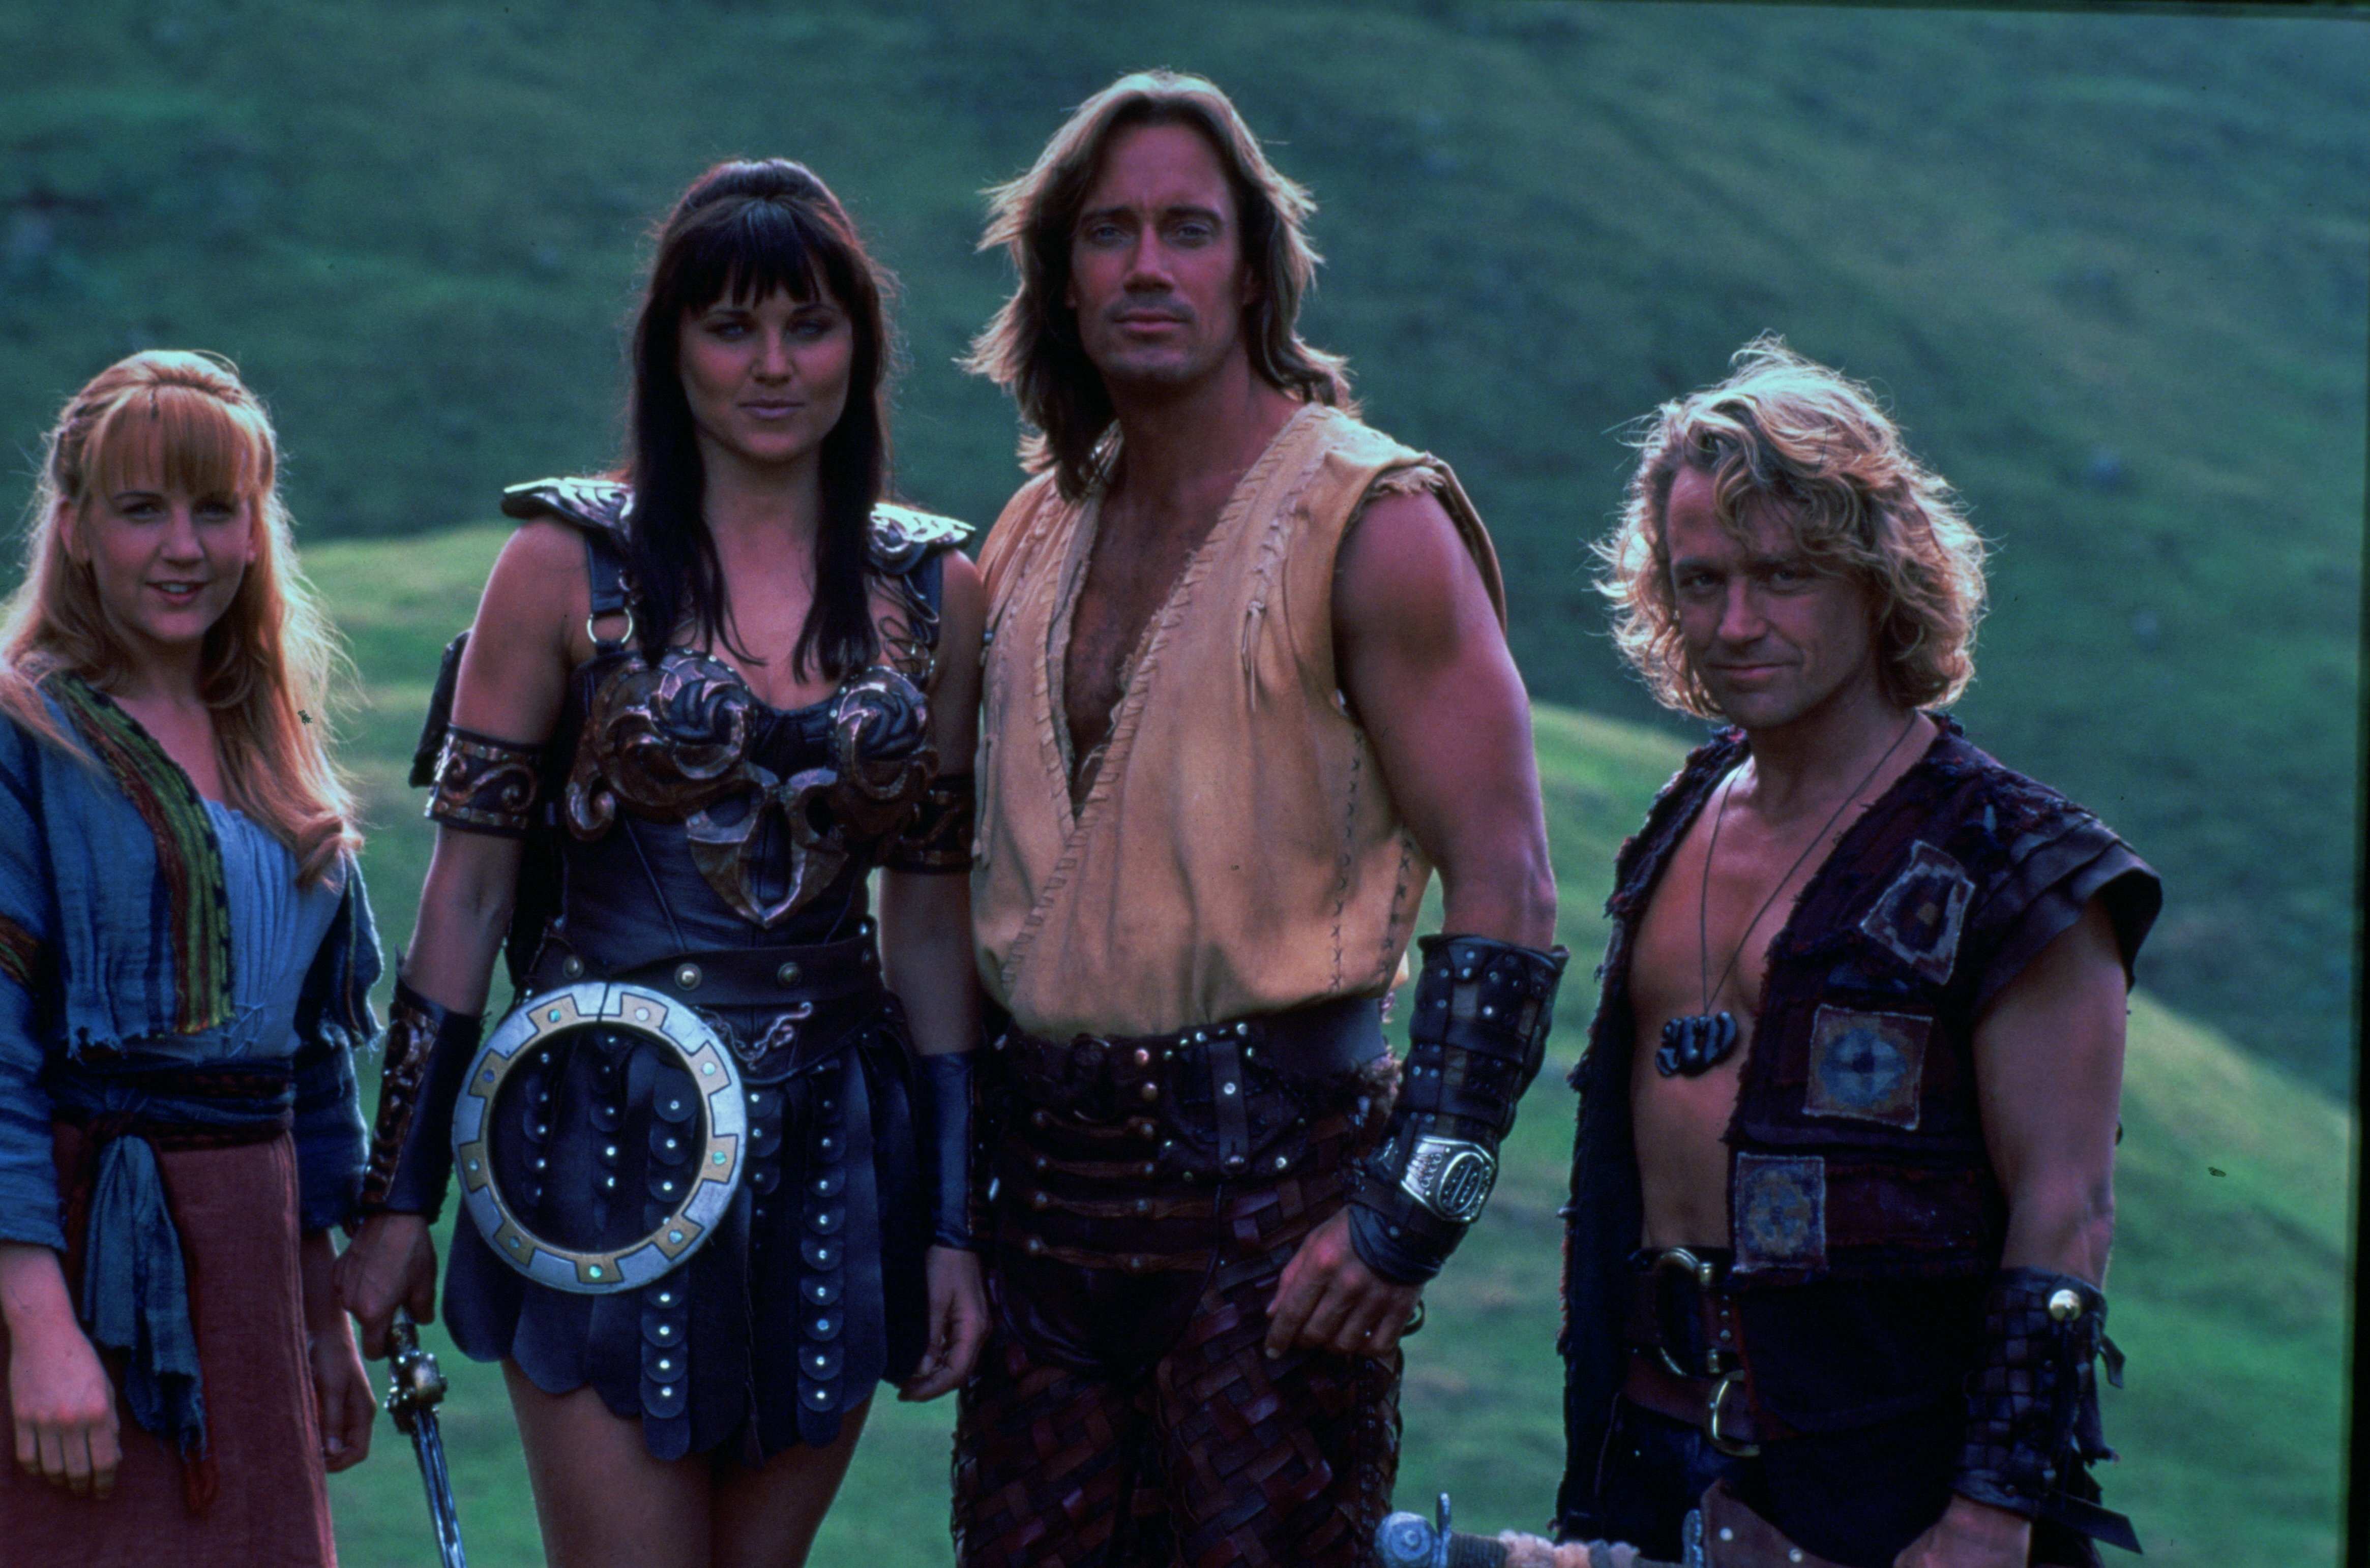 http://images6.fanpop.com/image/photos/35900000/Xena-big-size-xena-warrior-princess-35948821-4660-3084.jpg